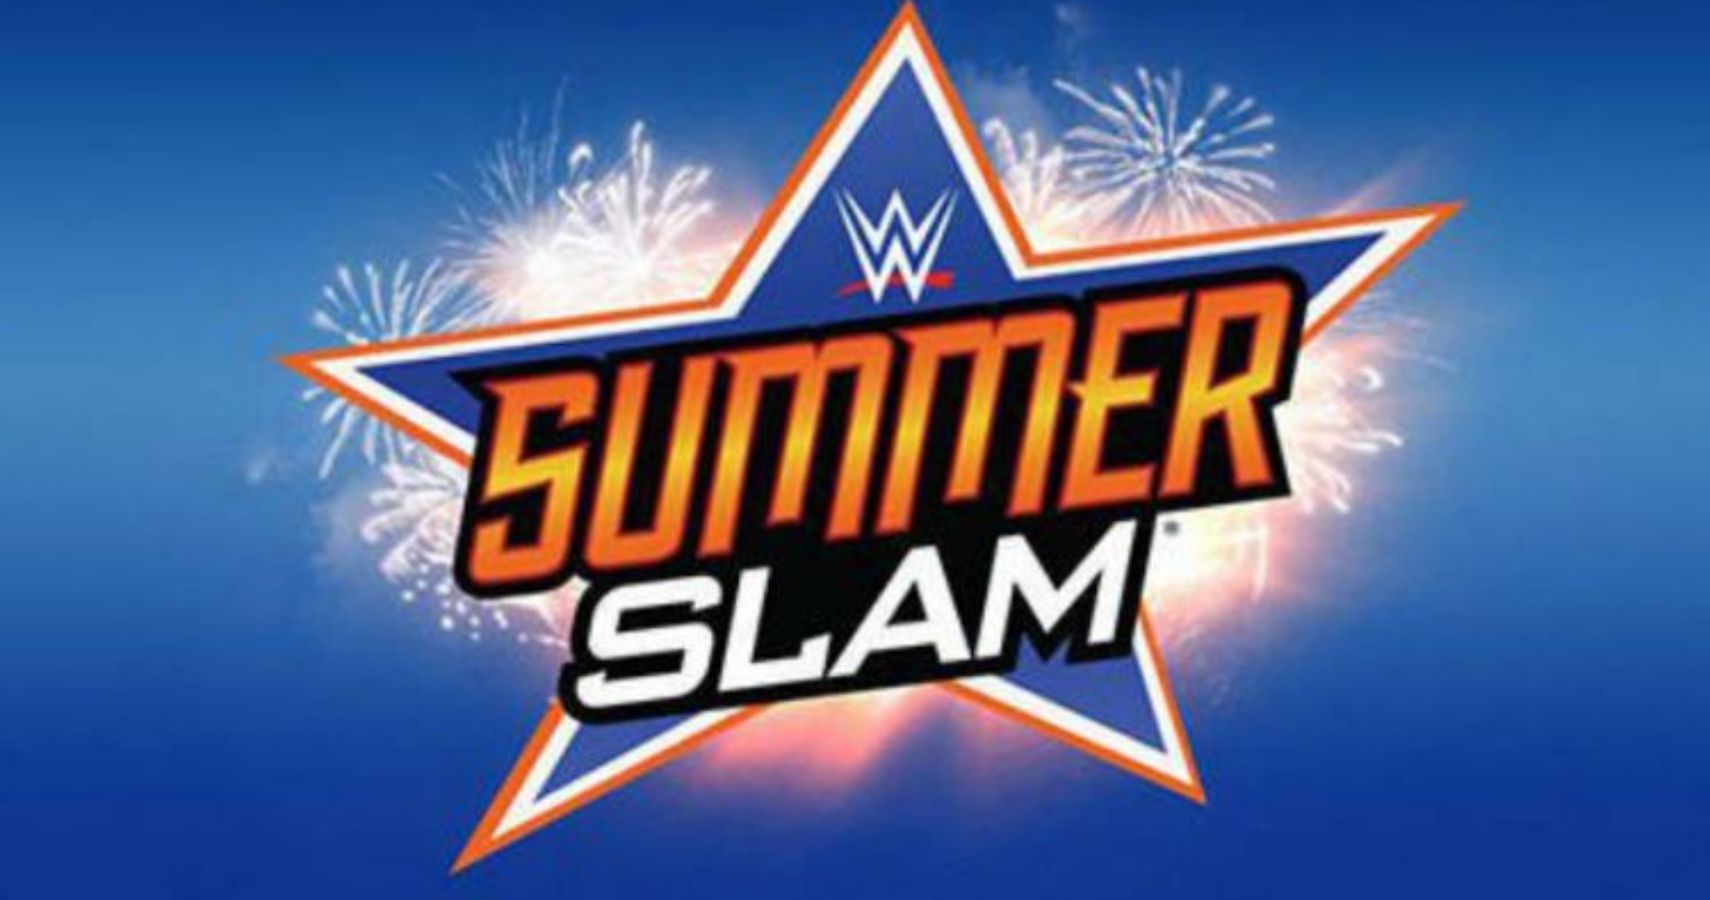 [Report] SummerSlam 2021 Date Revealed, Location Still Undecided